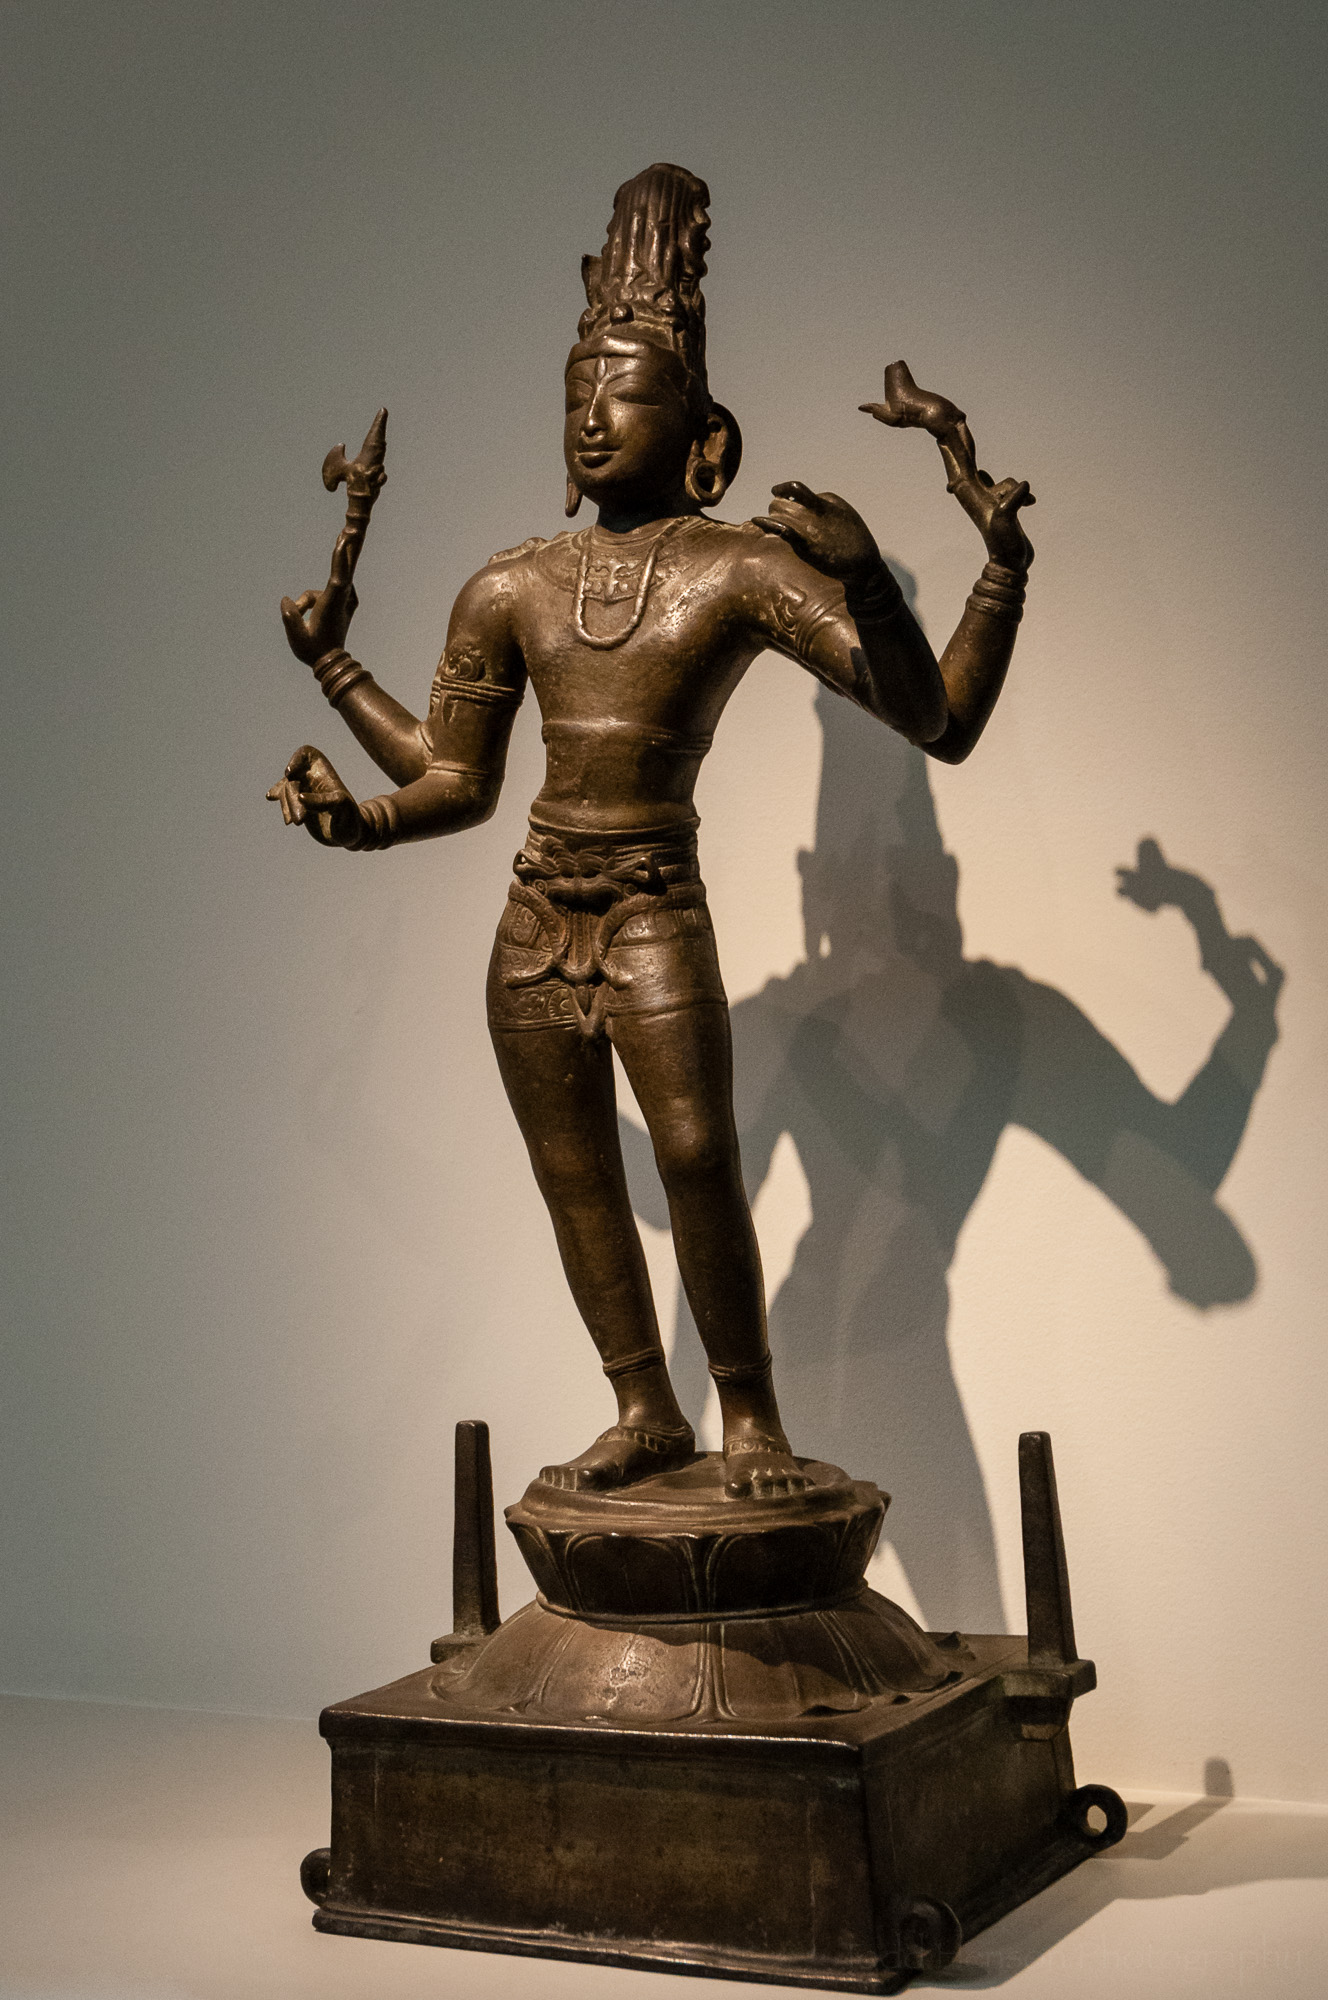 Shiva Vinadhara (Holder of the Vina) at the Sackler Gallery